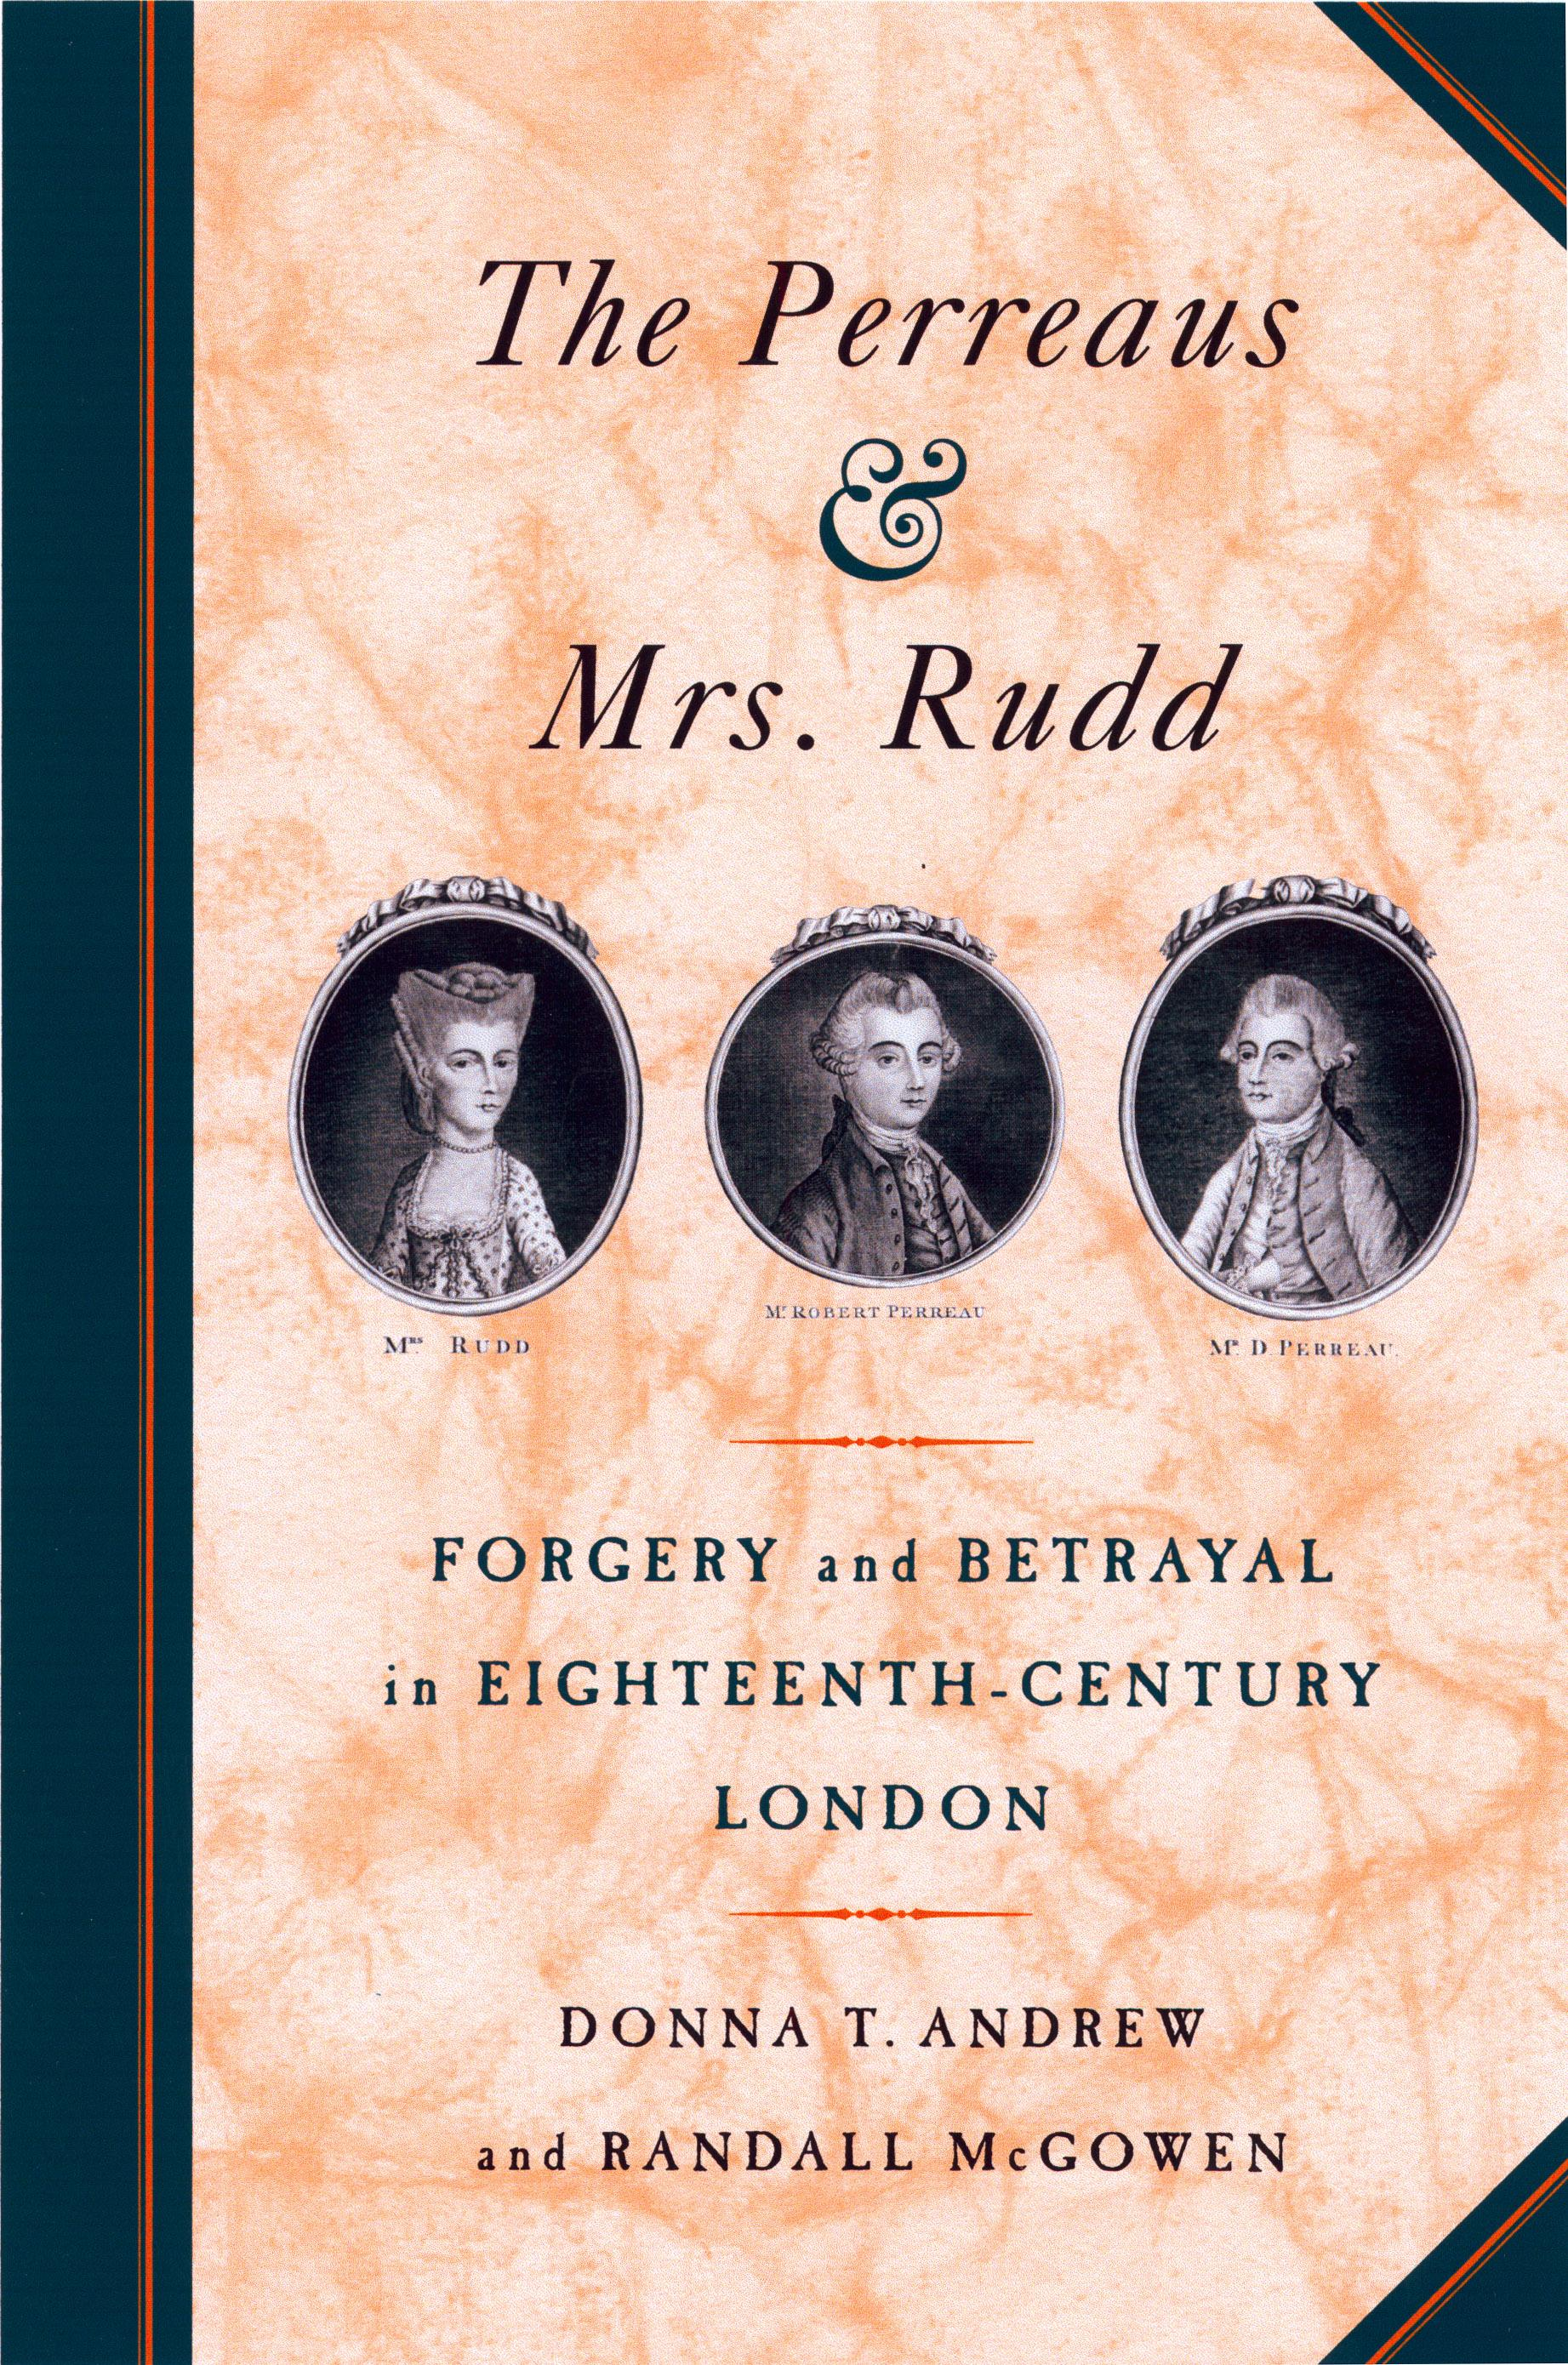 The Perreaus and Mrs. Rudd: Forgery and Betrayal in Eighteenth-Century London EB9780520923706